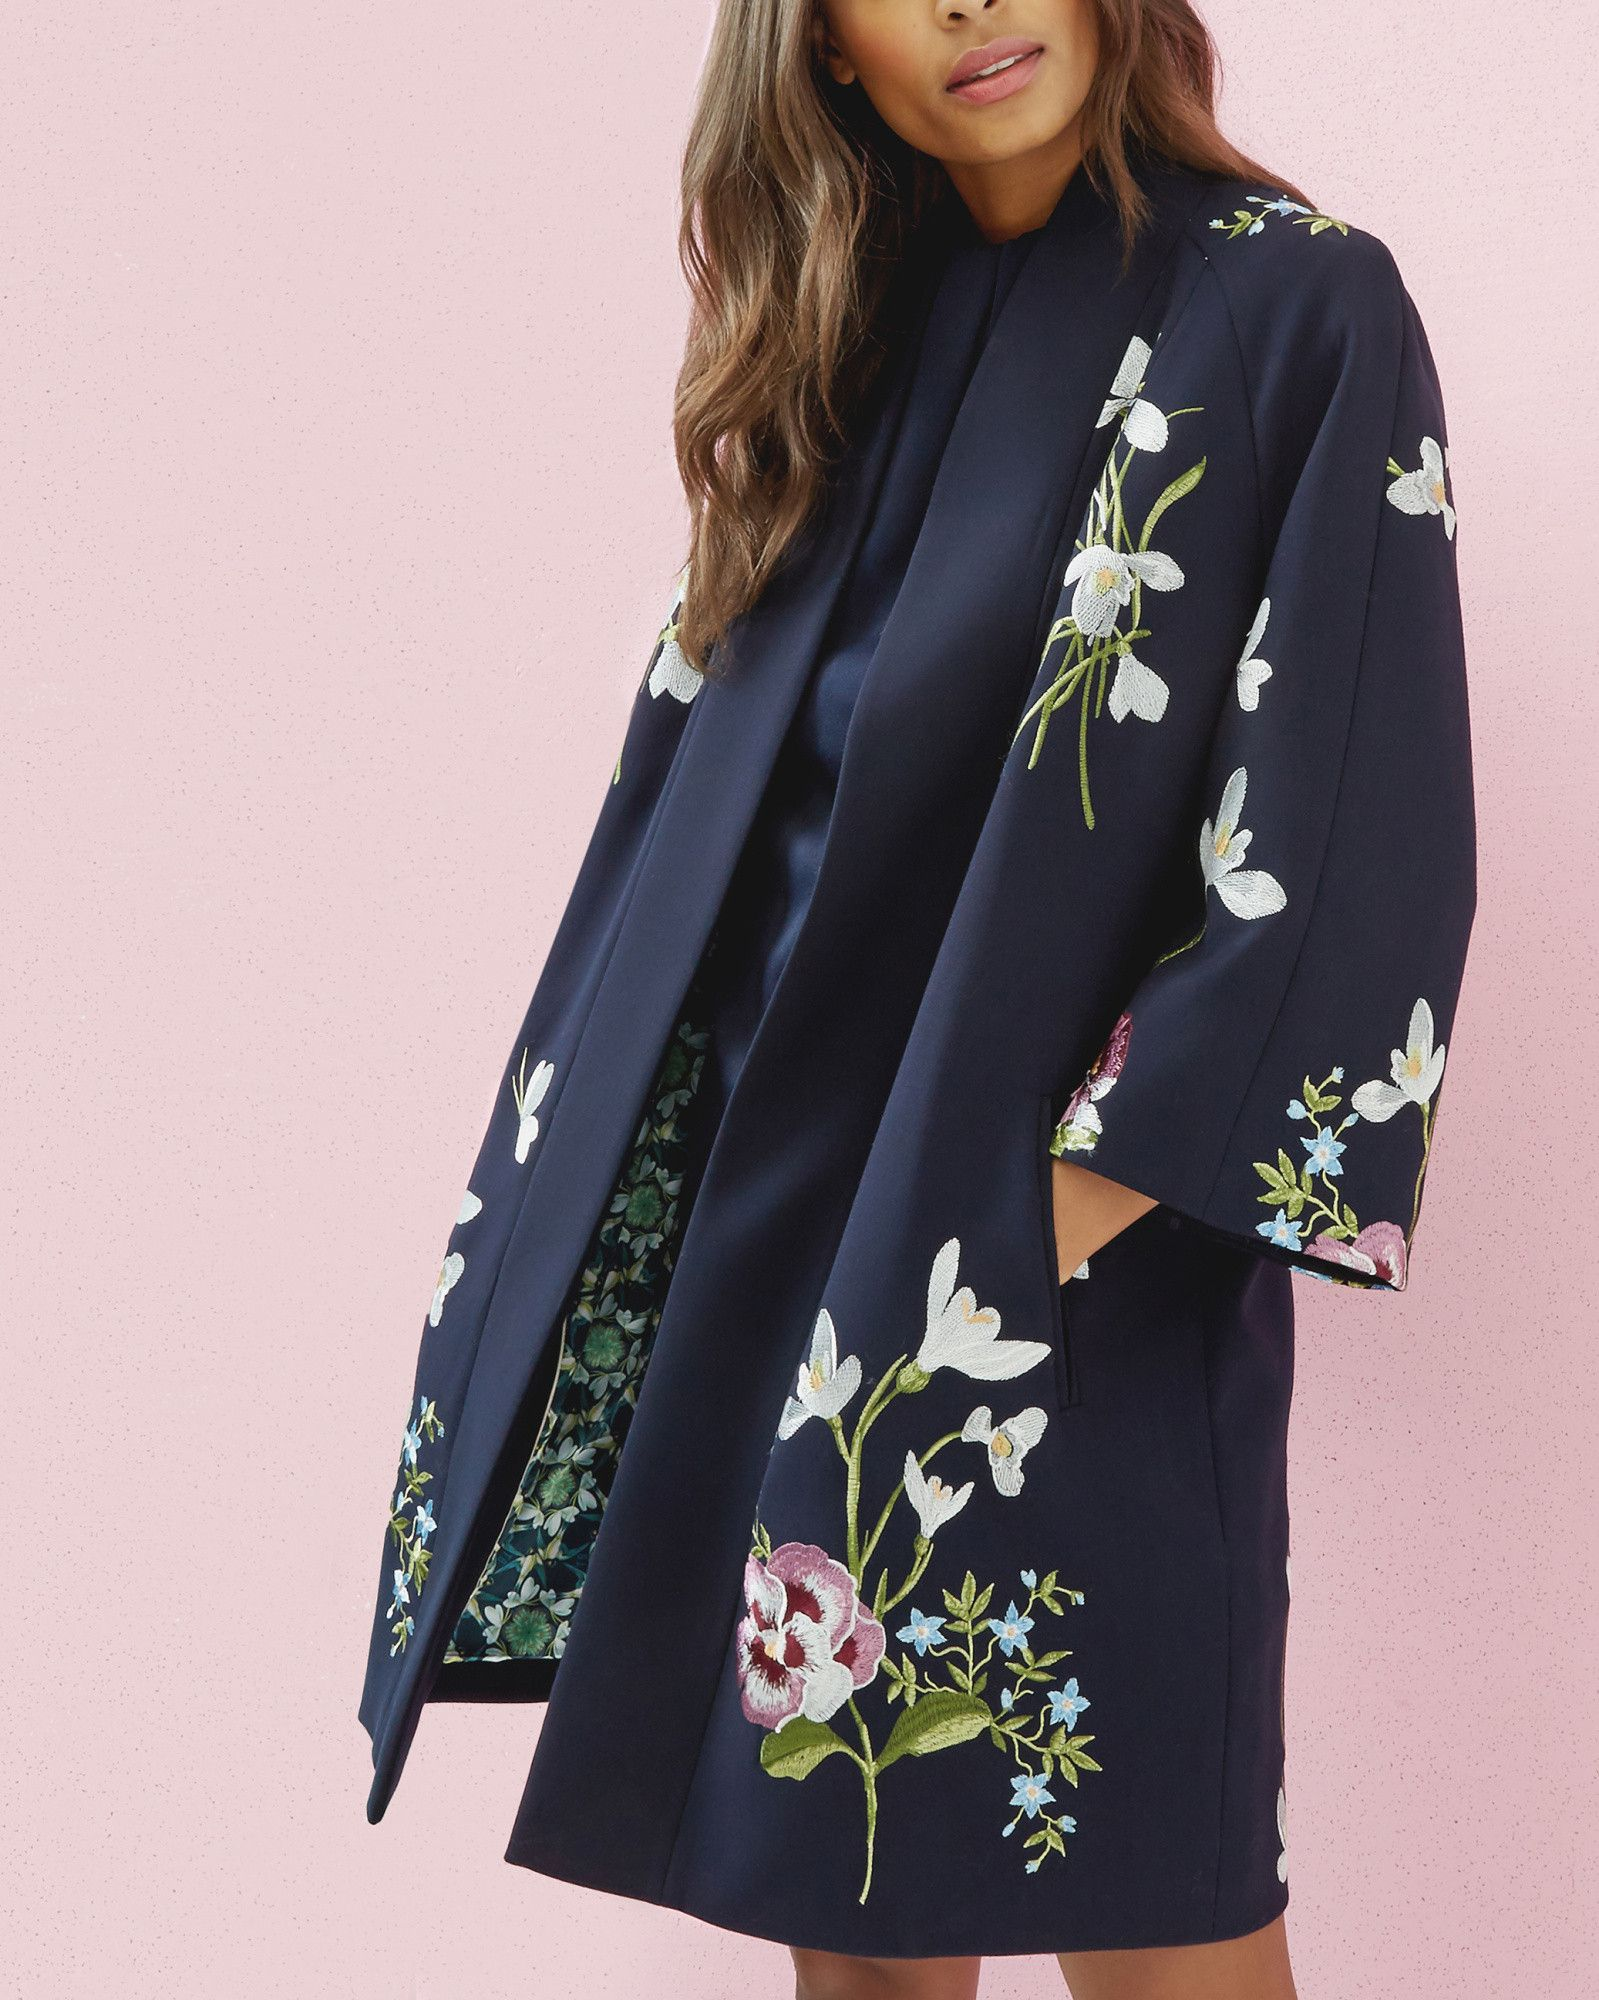 3872cb75e3be6f Spring Meadows kimono jacket - Dark Blue